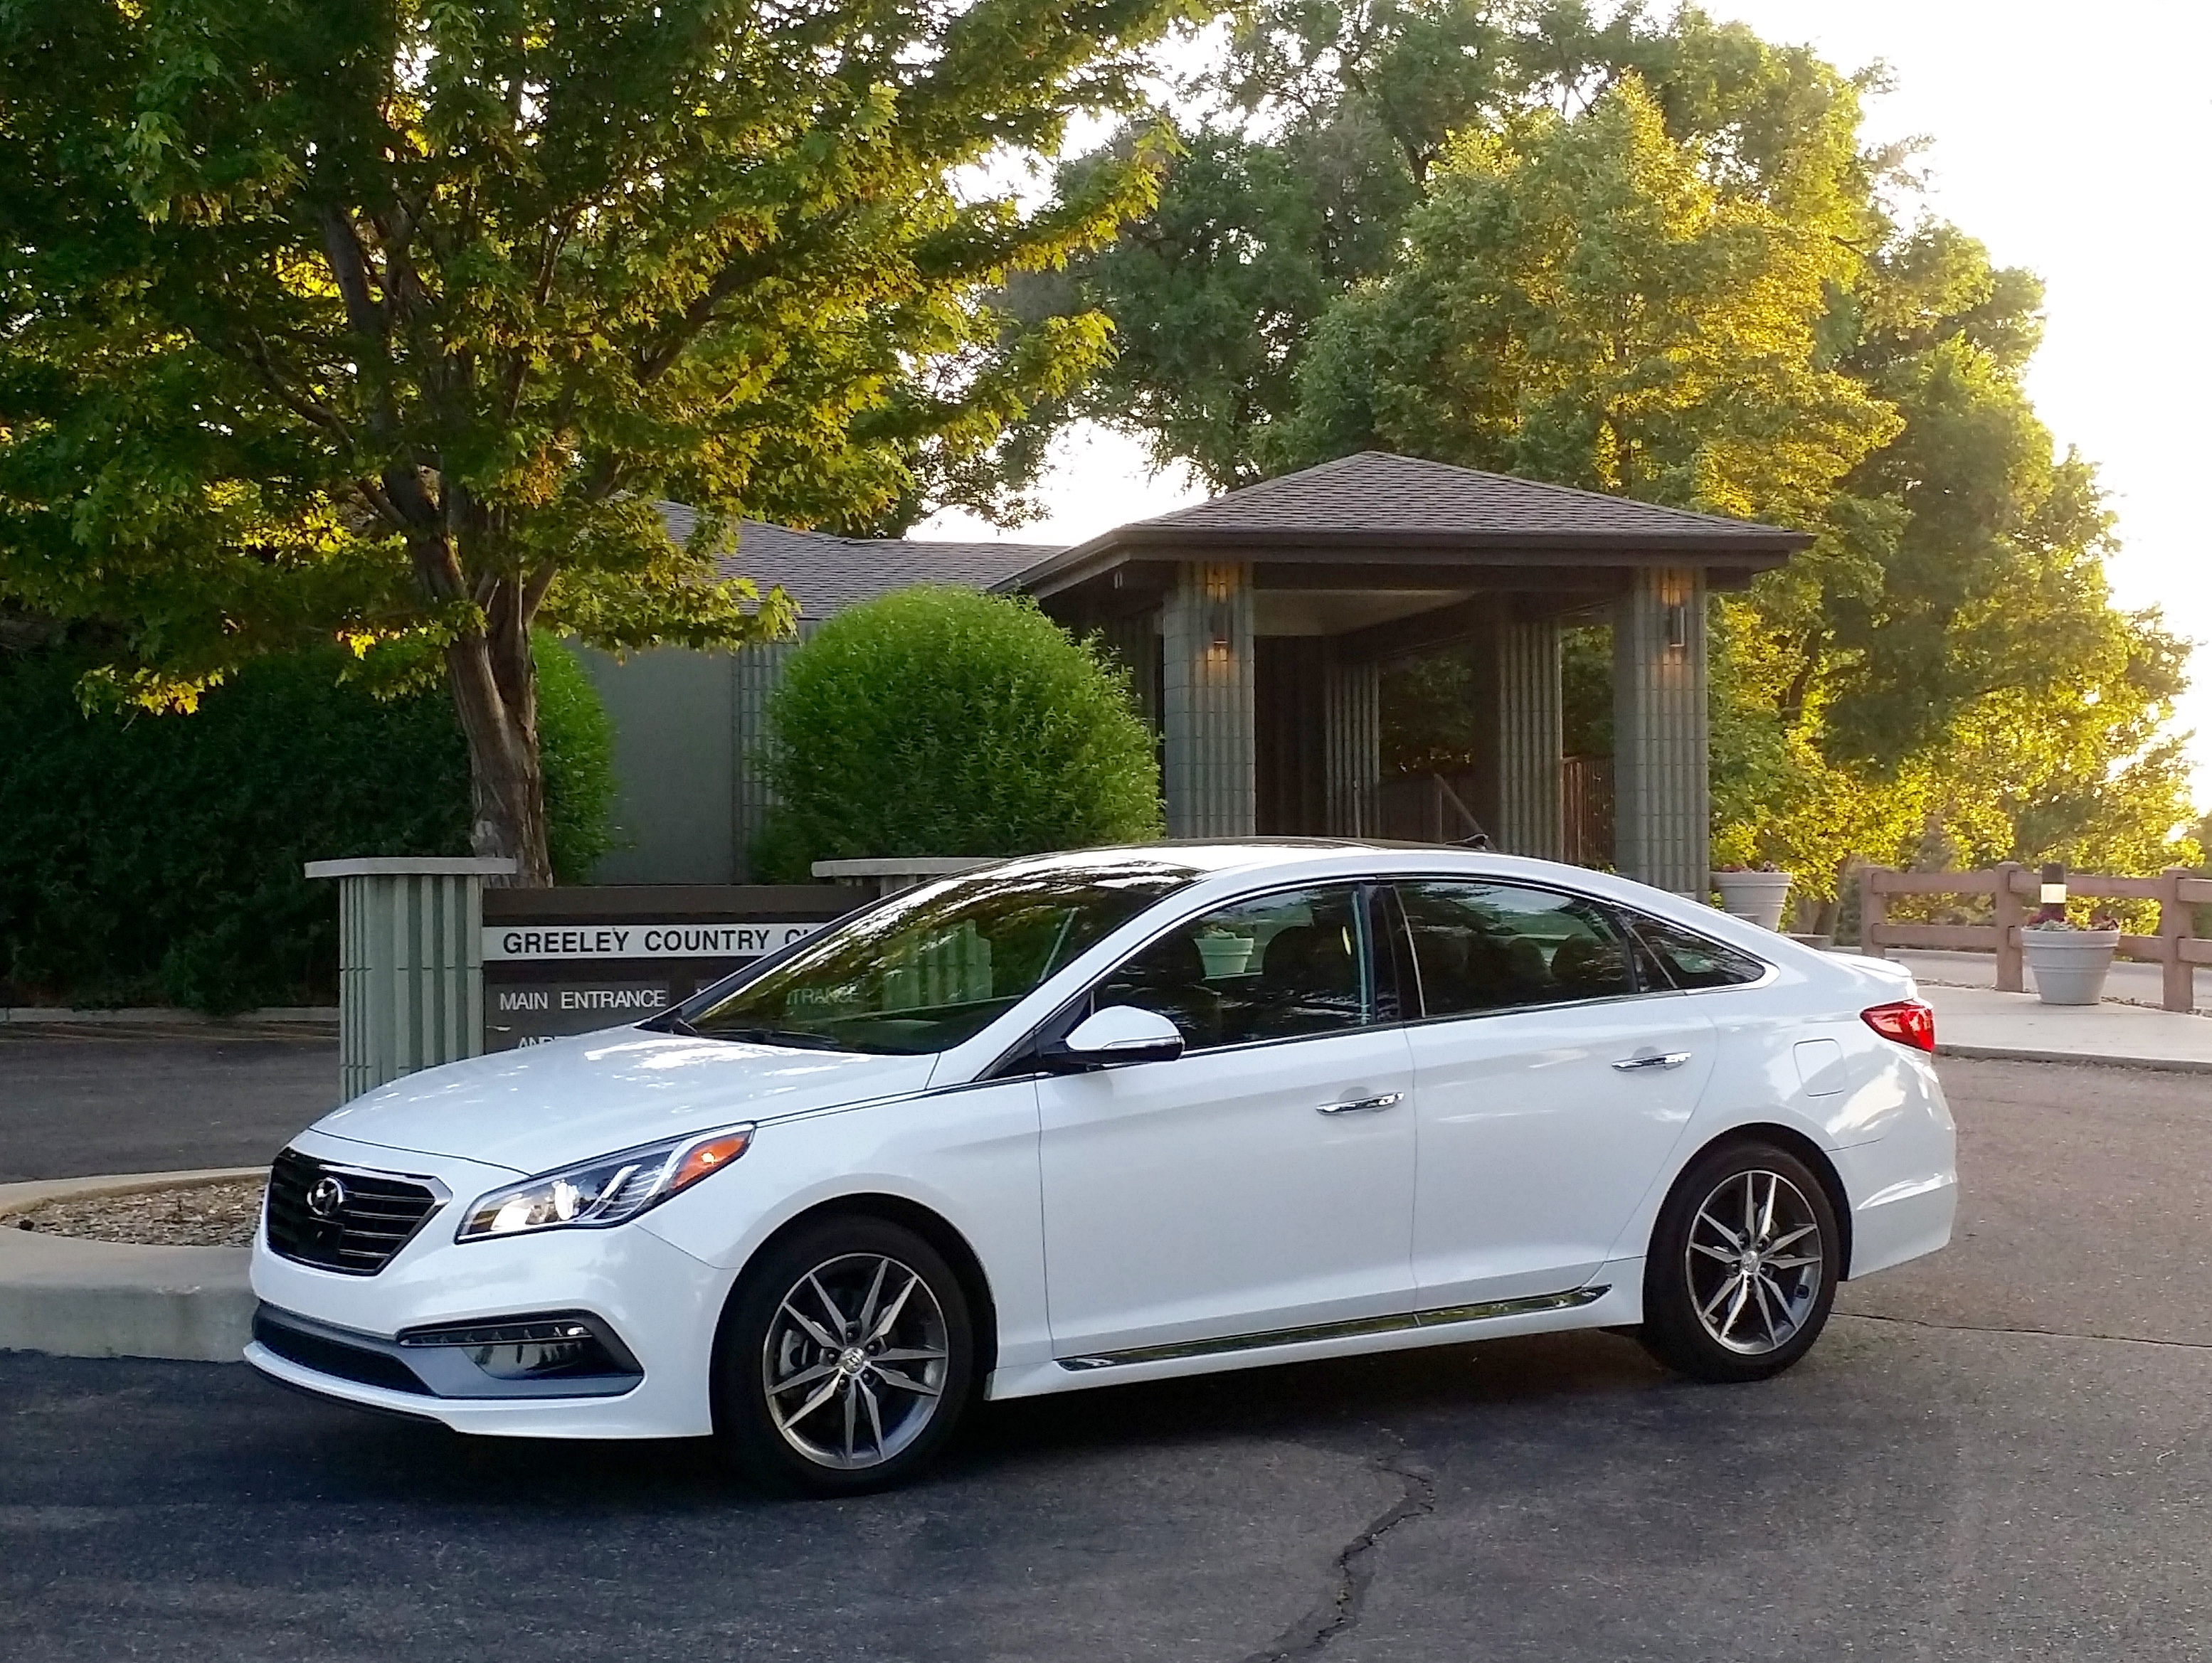 auto debuts news automobile in york hyundai front quarters at show there new photos sonata sport